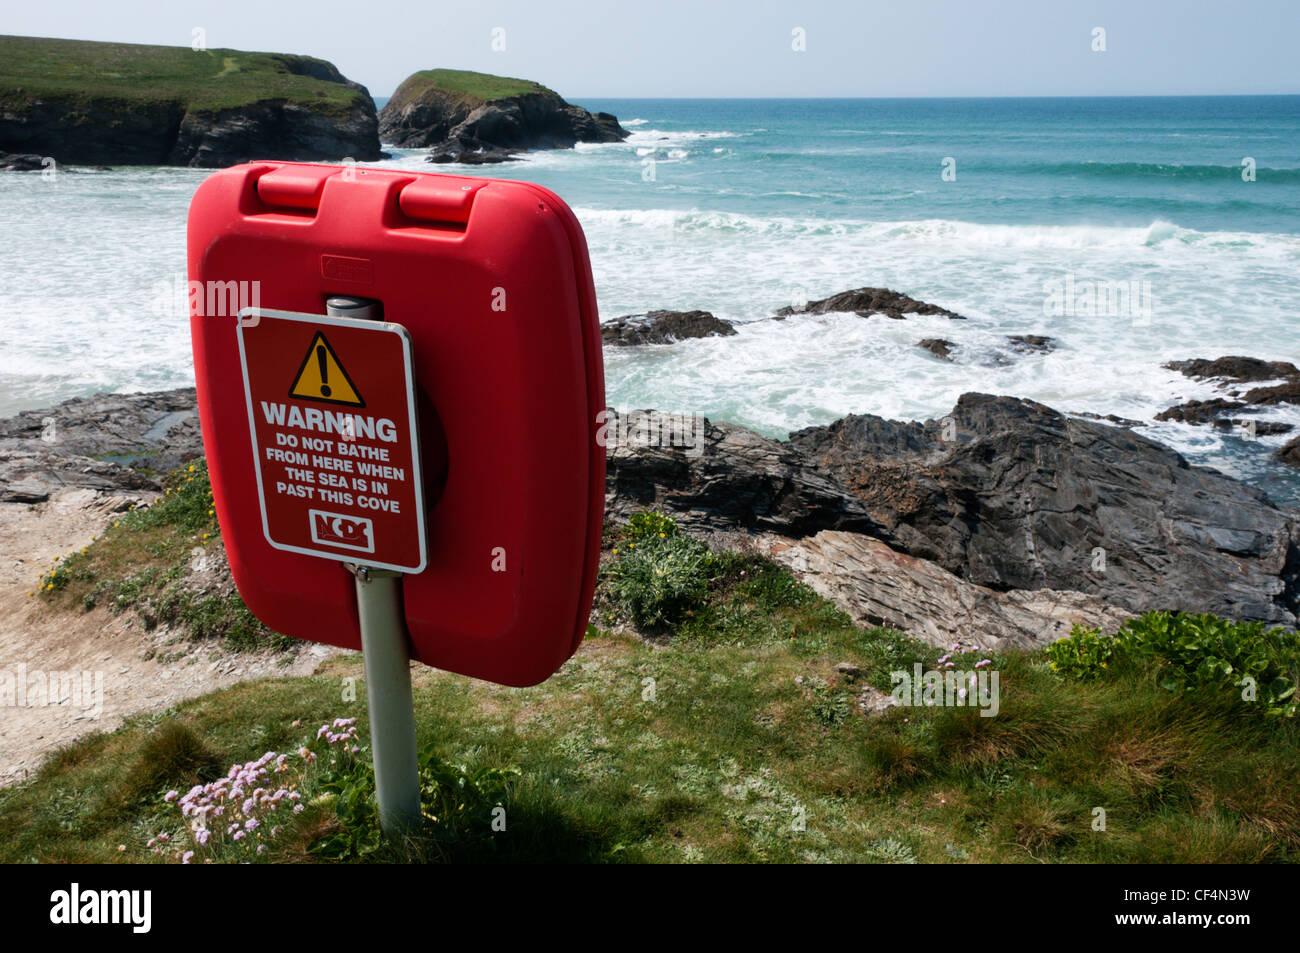 Warning Notice on the back of a lifebelt behind a Cornish beach near Treyarnon Cove. - Stock Image